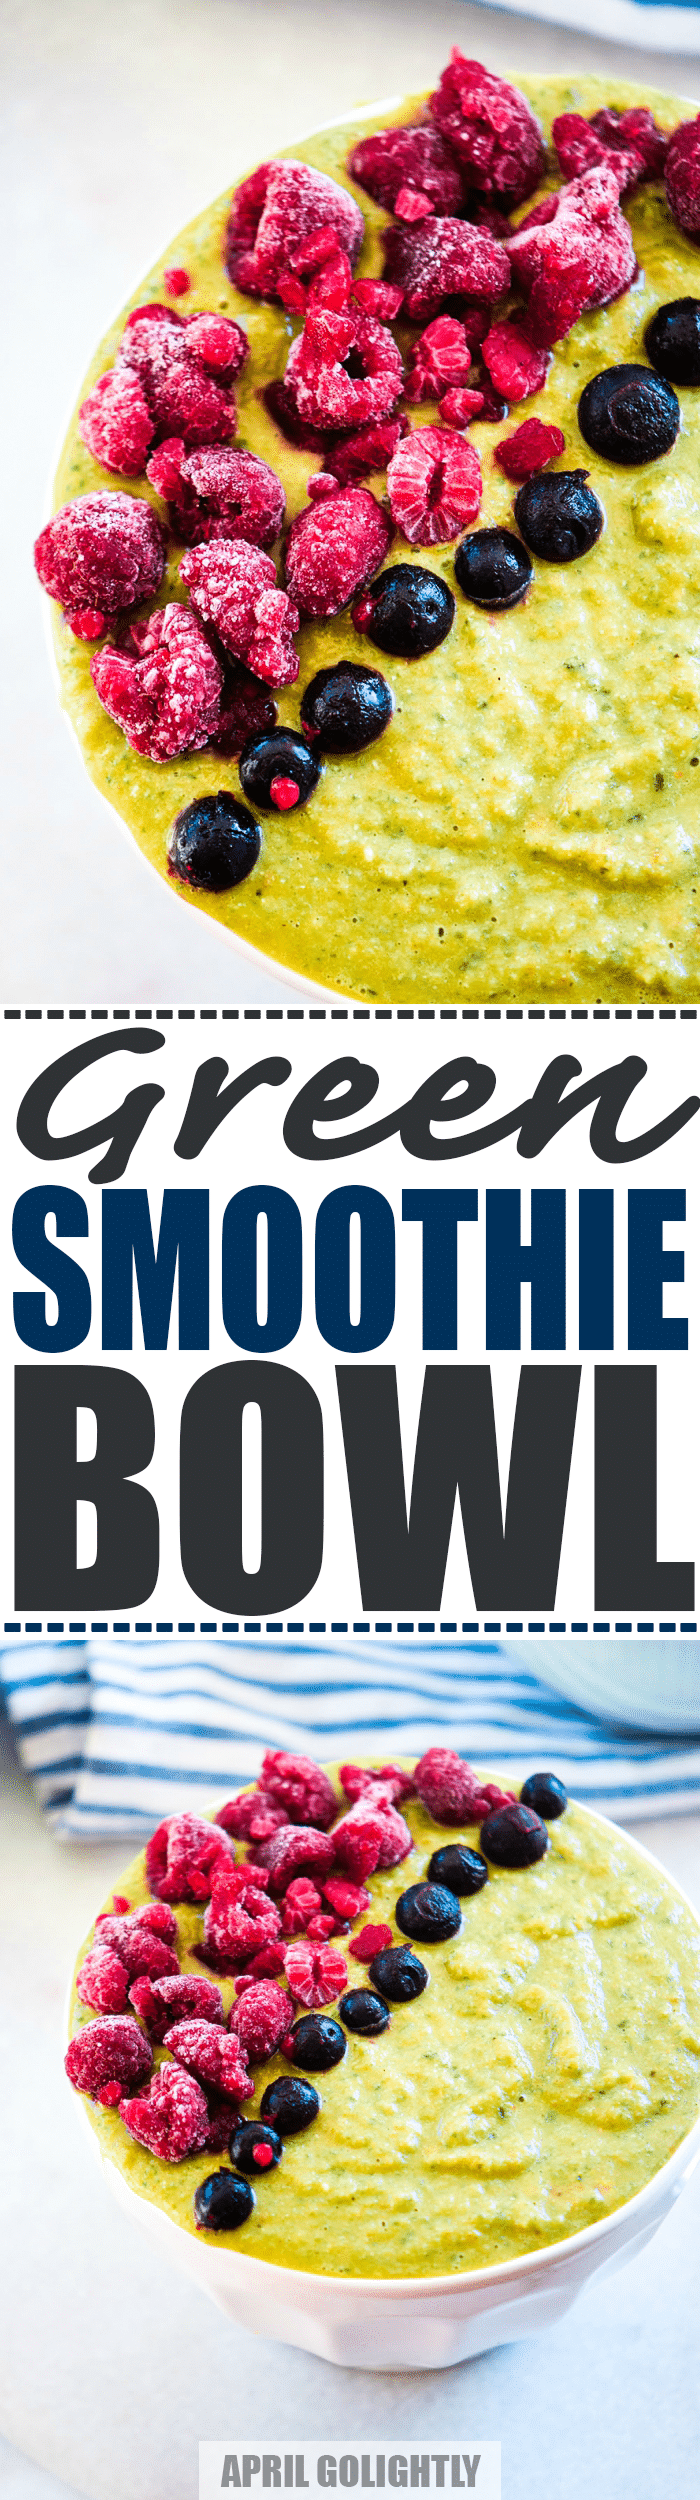 big-green-smoothie-bowl